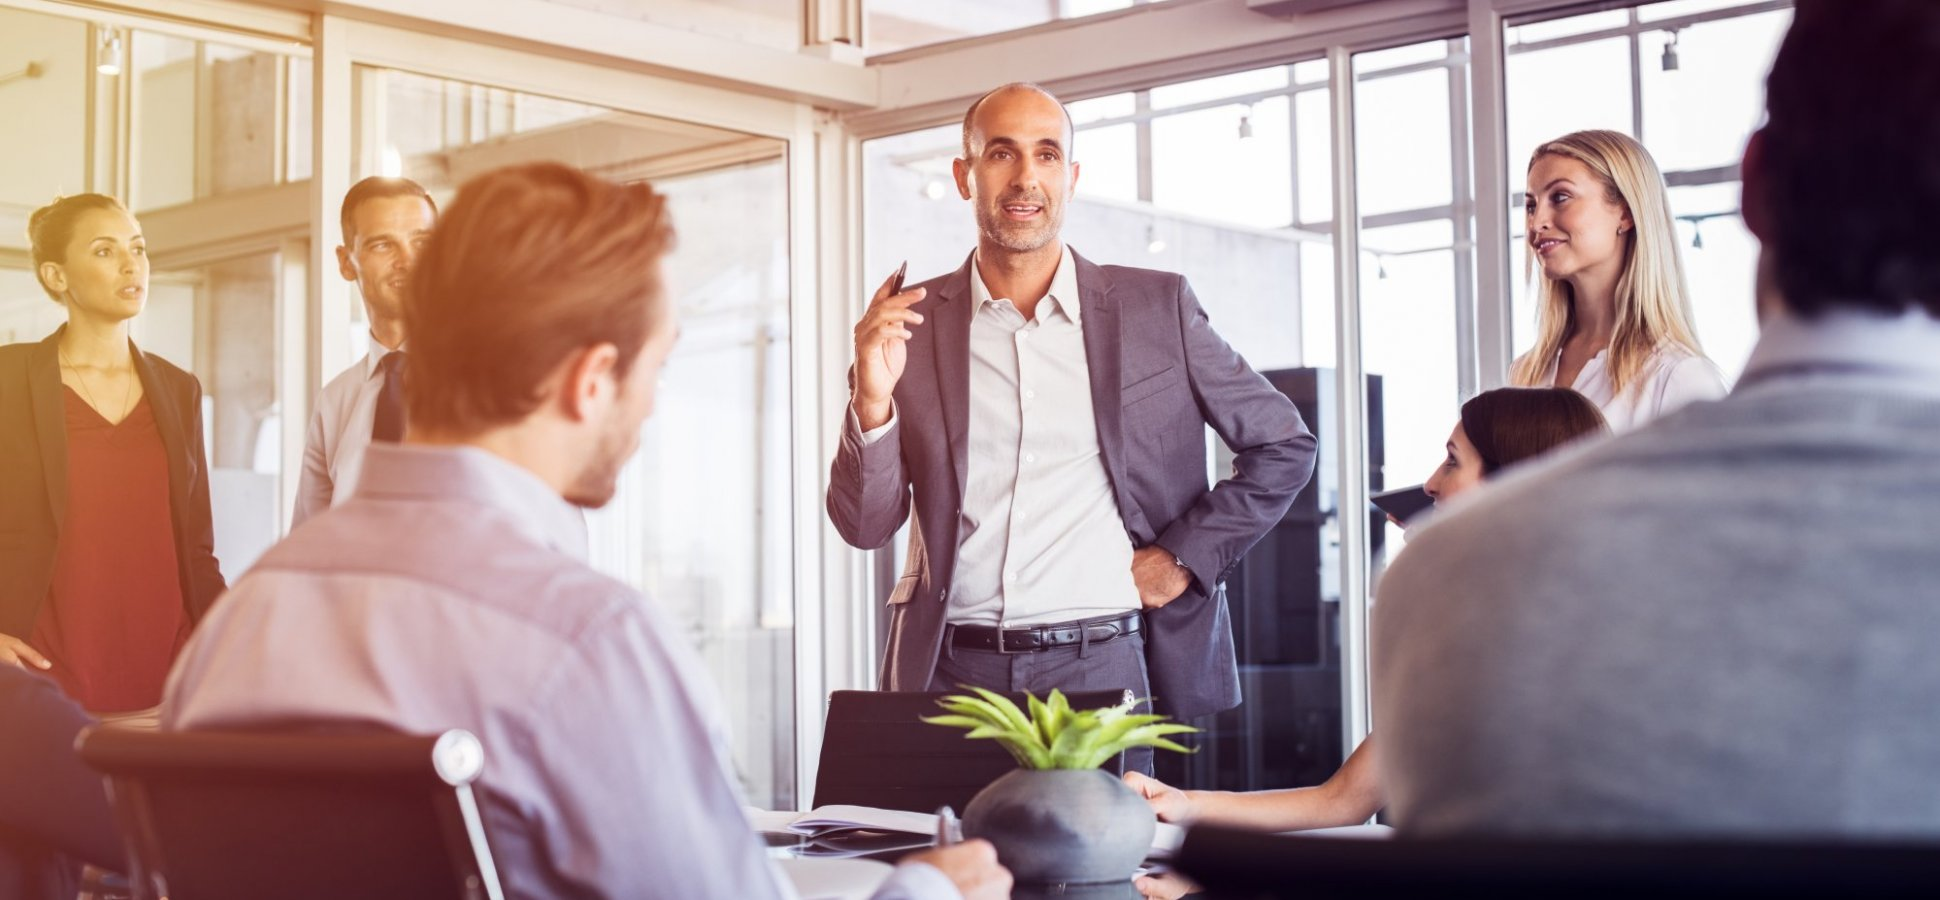 How to Motivate Employees Without Bossing Them Around